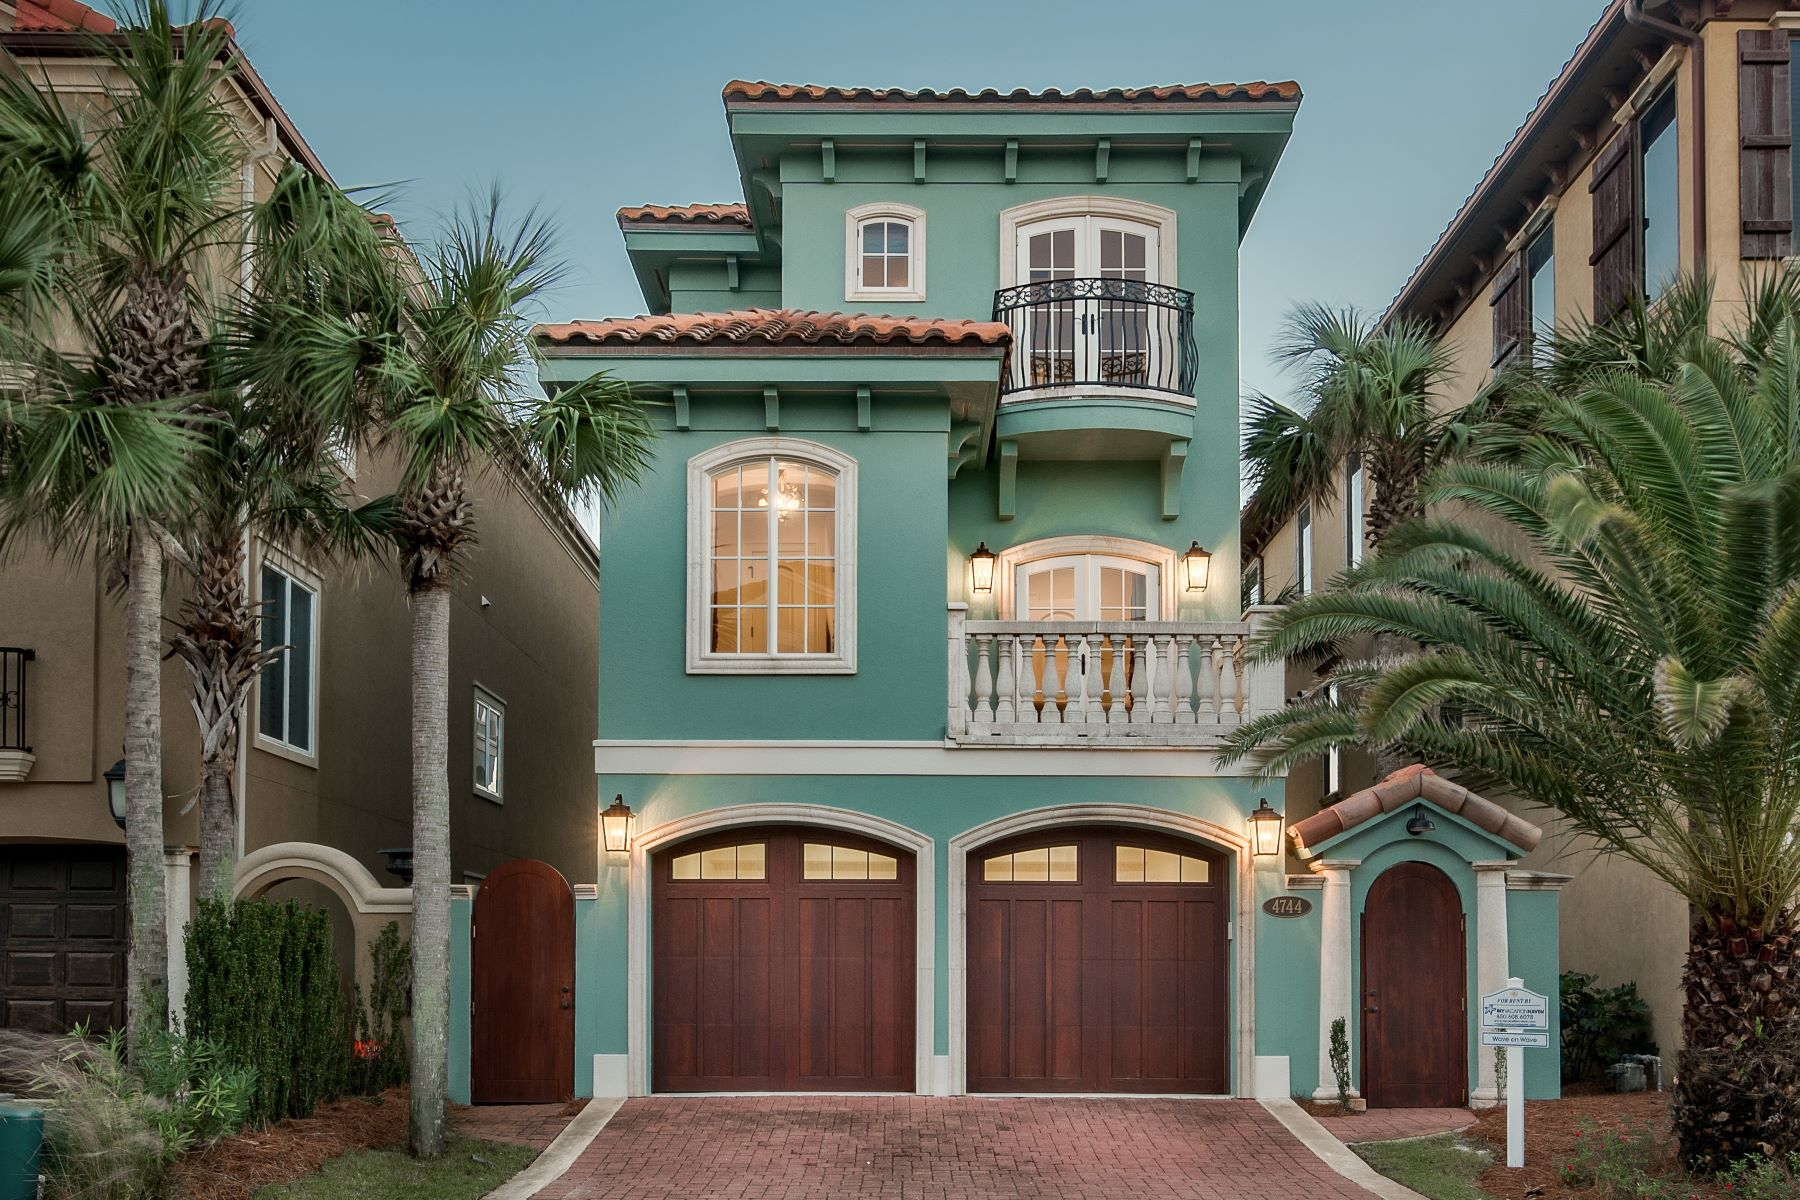 single family homes for Active at Gulf-front Mediterranean Retreat 4744 Ocean Boulevard Destin, Florida 32541 United States